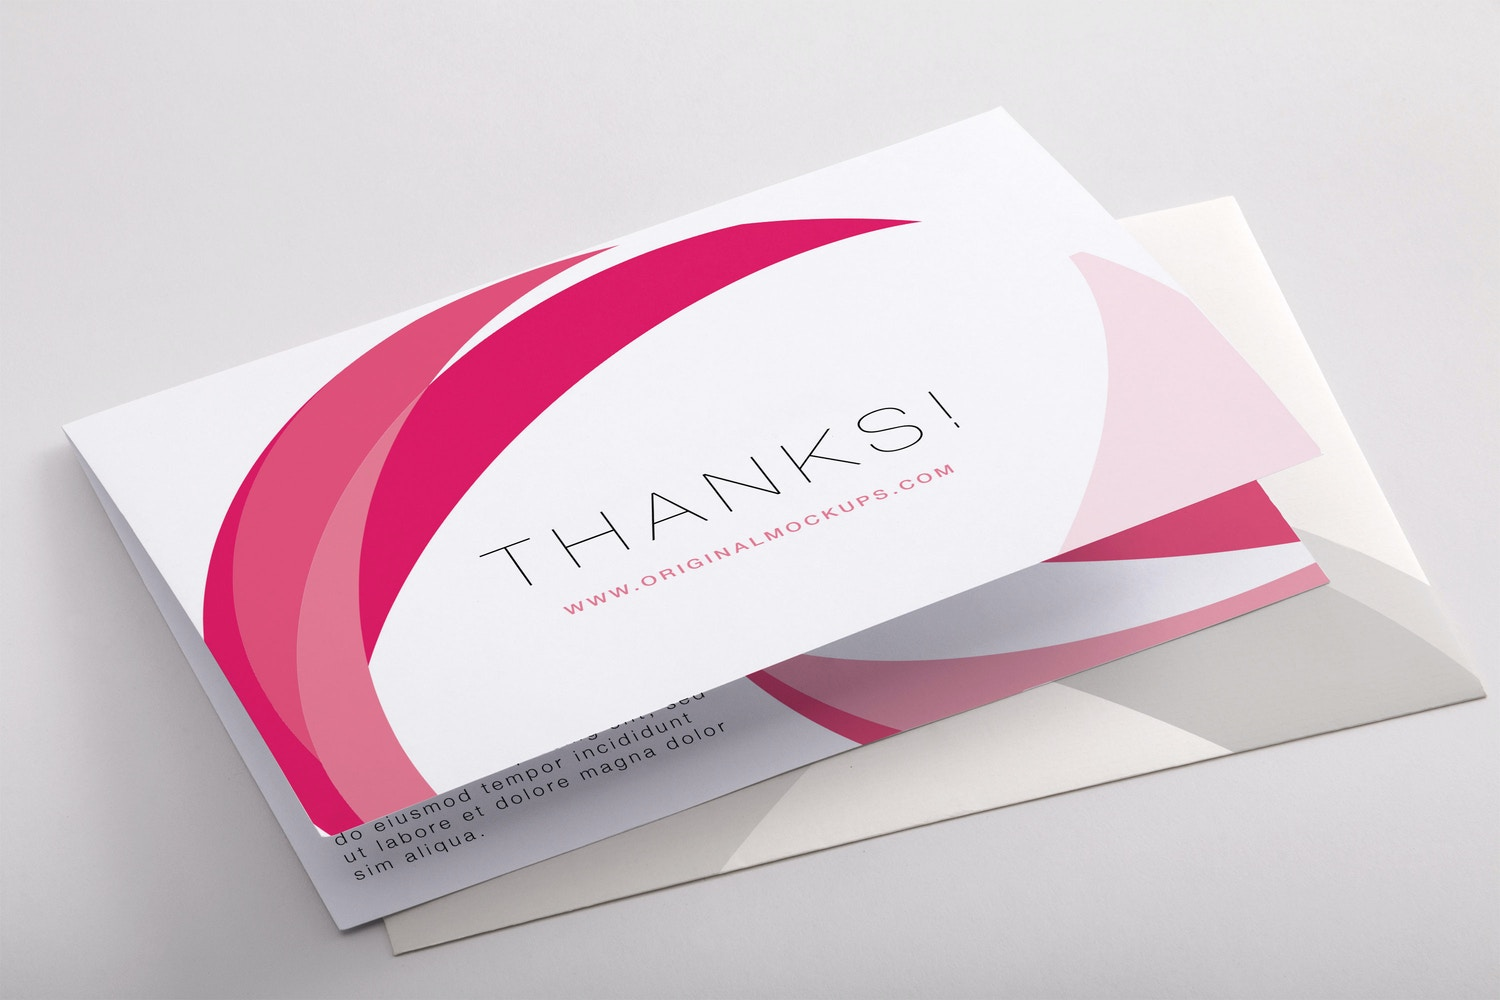 Bifold Thank You Card PSD Mockup 03 by Original Mockups on Original Mockups